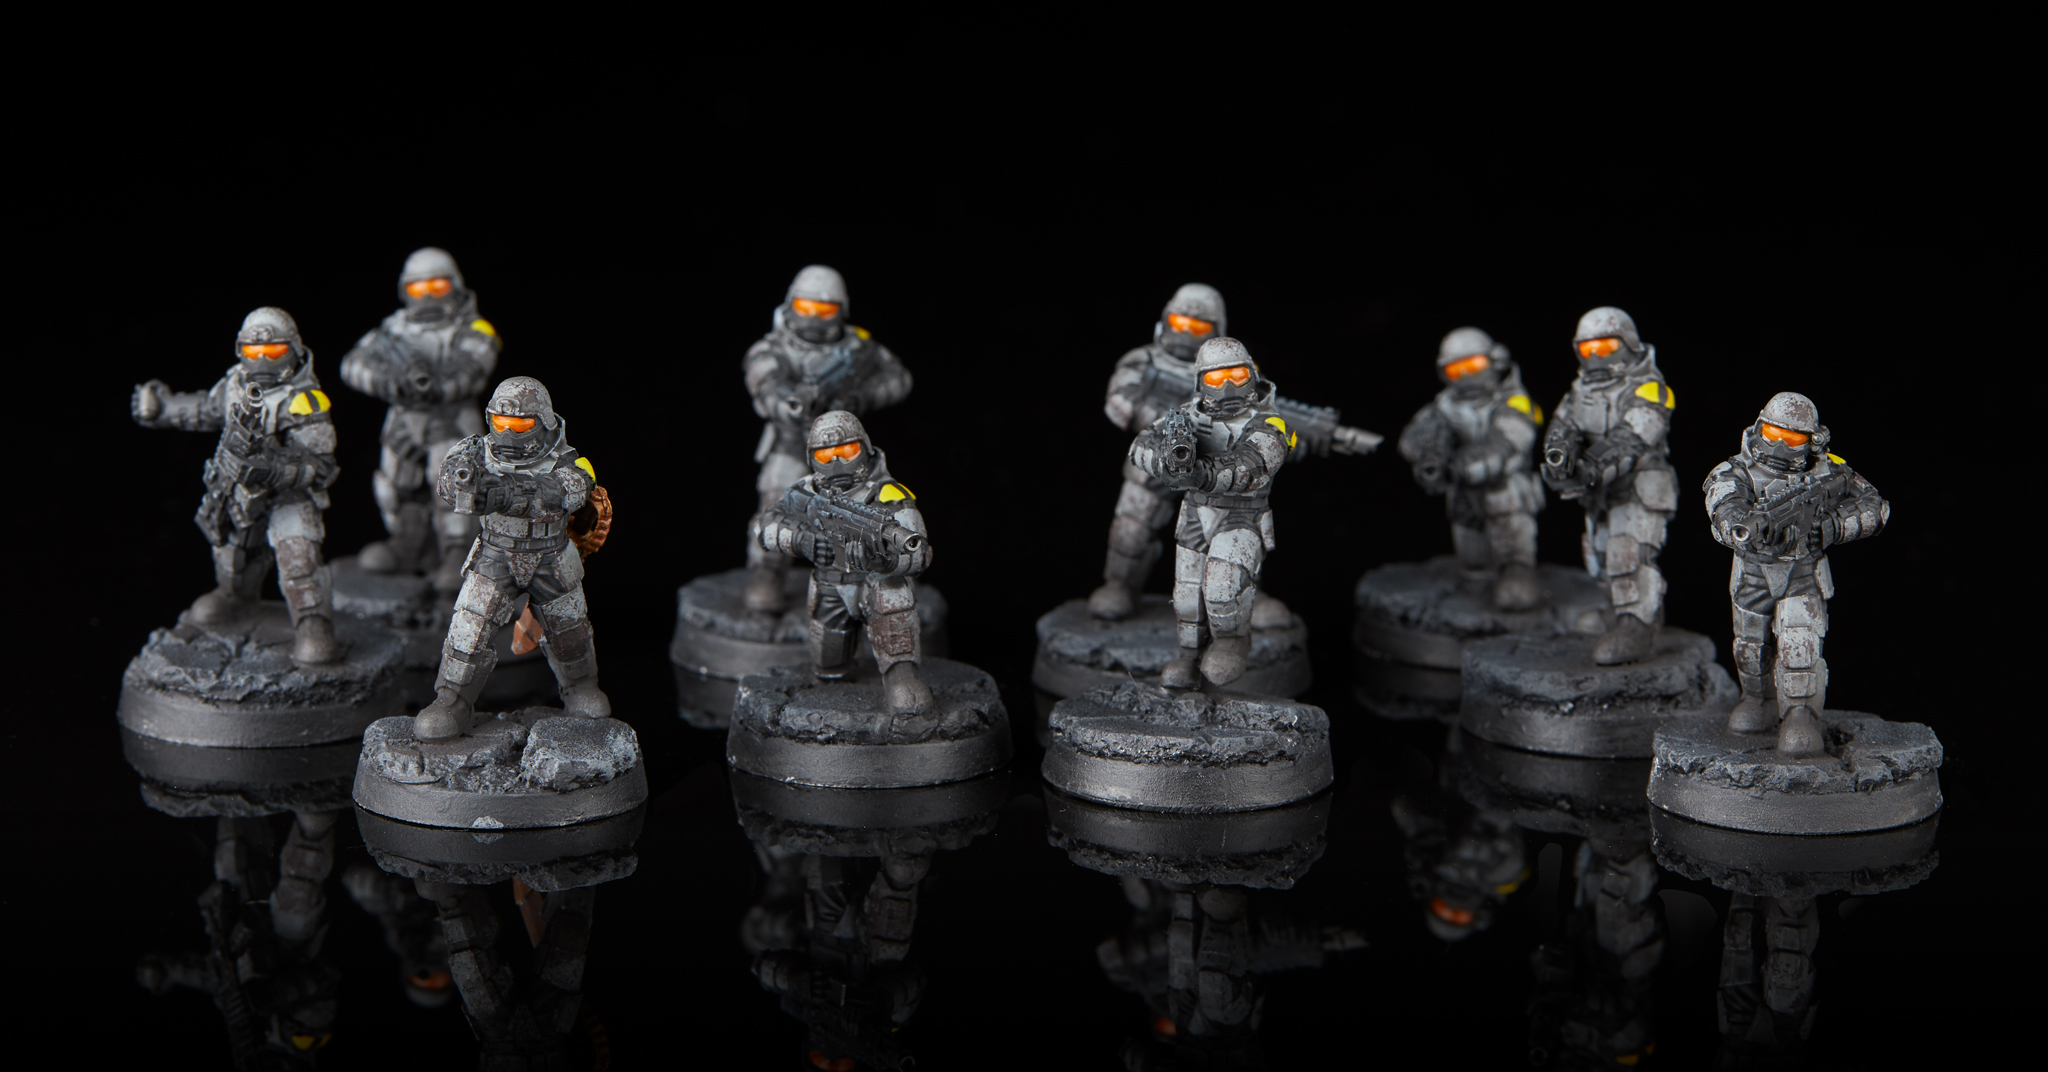 Warhammer 40k Astra Militarum Imperial Guard Command Souad x5 SEE DESCRIPTION